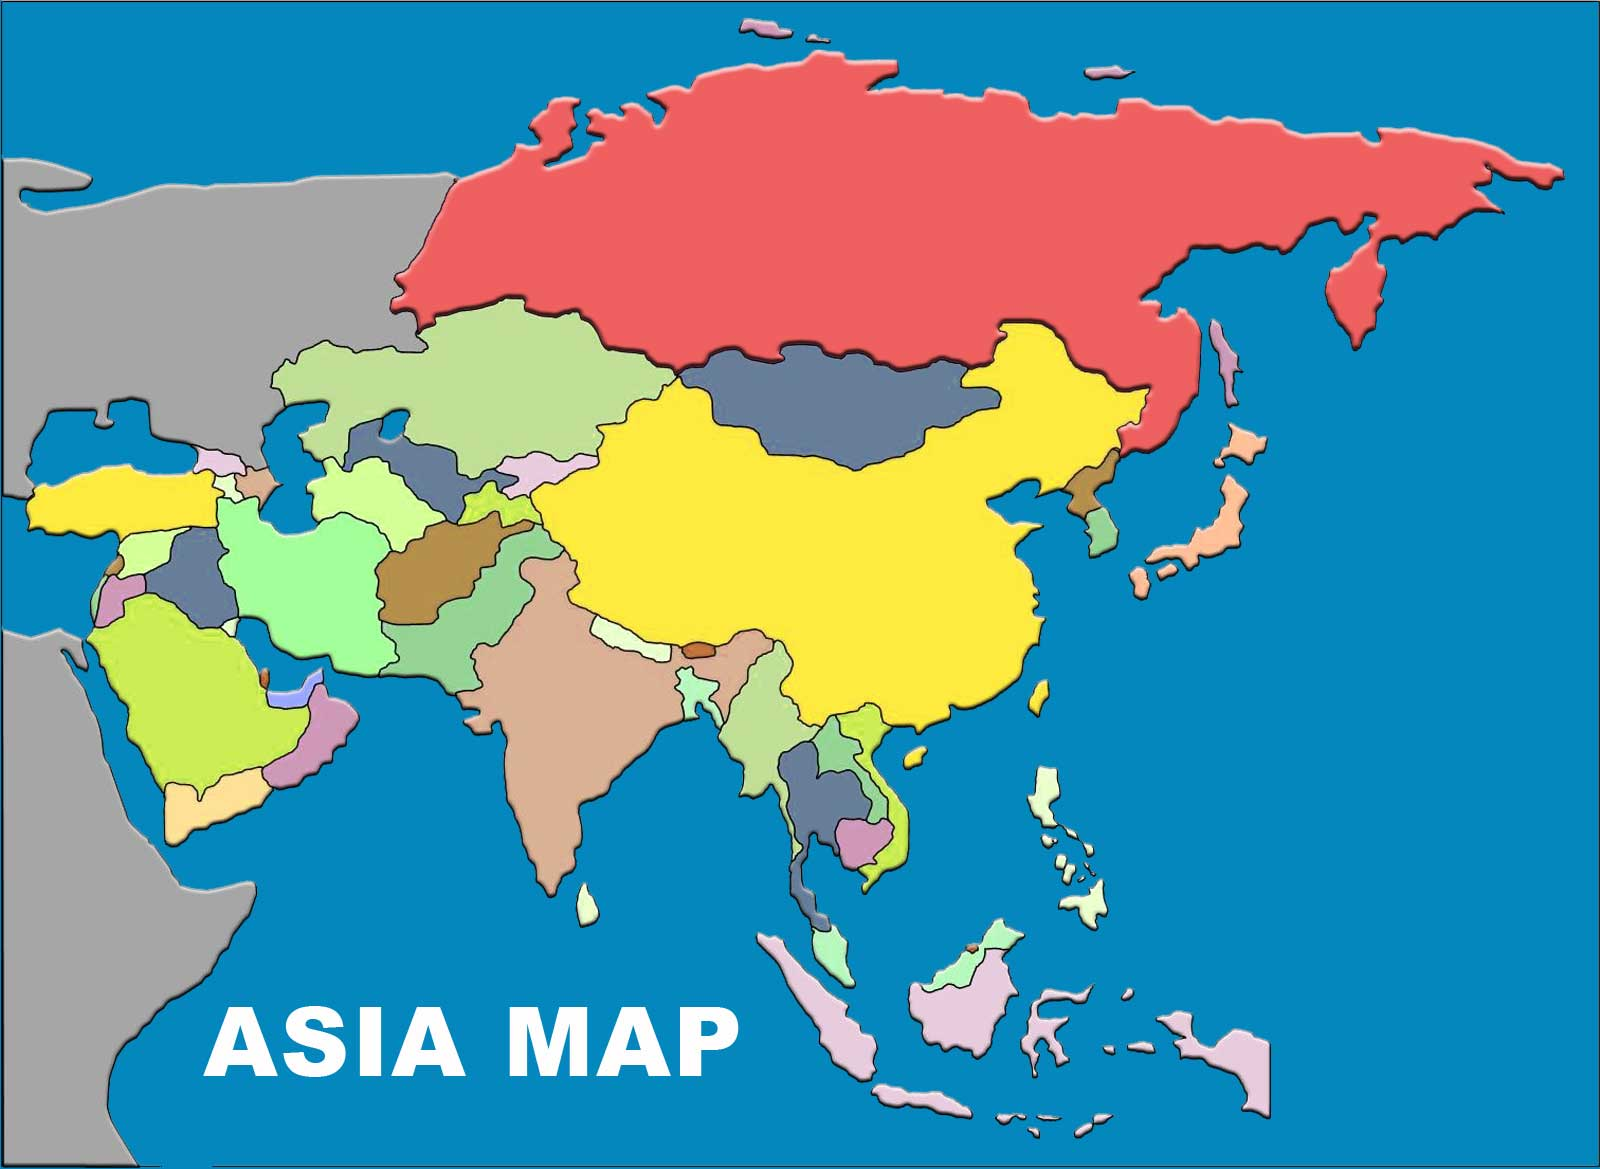 Map Of Asia Without Names.Asia Map With Country Names And Capitals Peta Dunia Sejarah